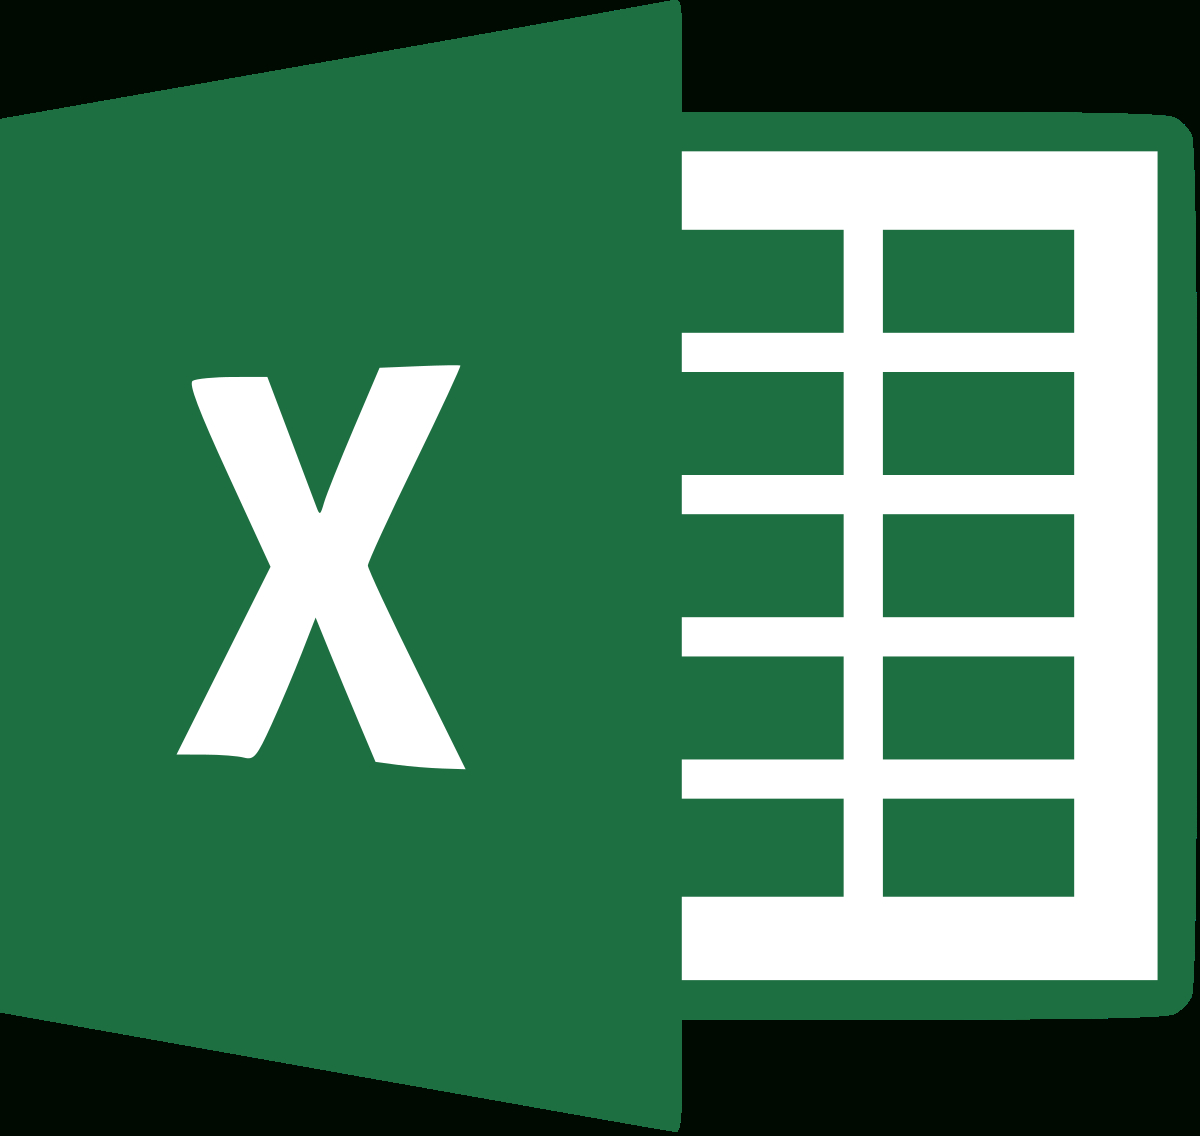 Develop And Use Complex Spreadsheets Excel 2013 Pertaining To Microsoft Excel  Wikipedia Develop And Use Complex Spreadsheets Excel 2013 Printable Spreadshee Printable Spreadshee develop and use complex spreadsheets excel 2013 answers